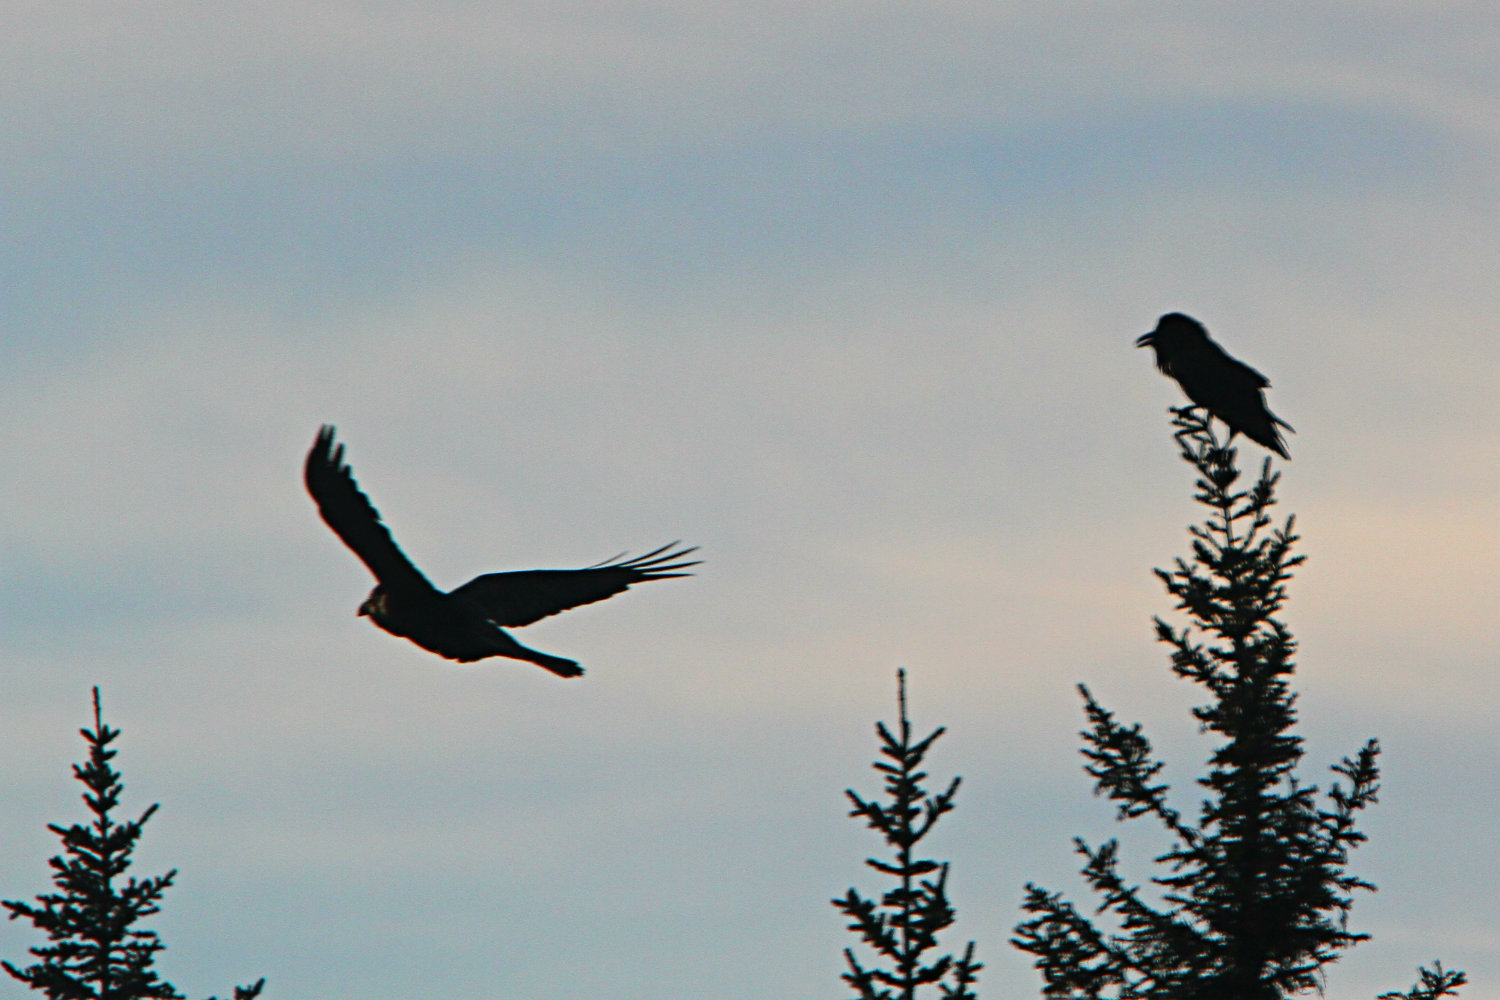 A couple of Ravens announced their presence with distinctive loud croaks; as well as some more unfamiliar vocalizations.